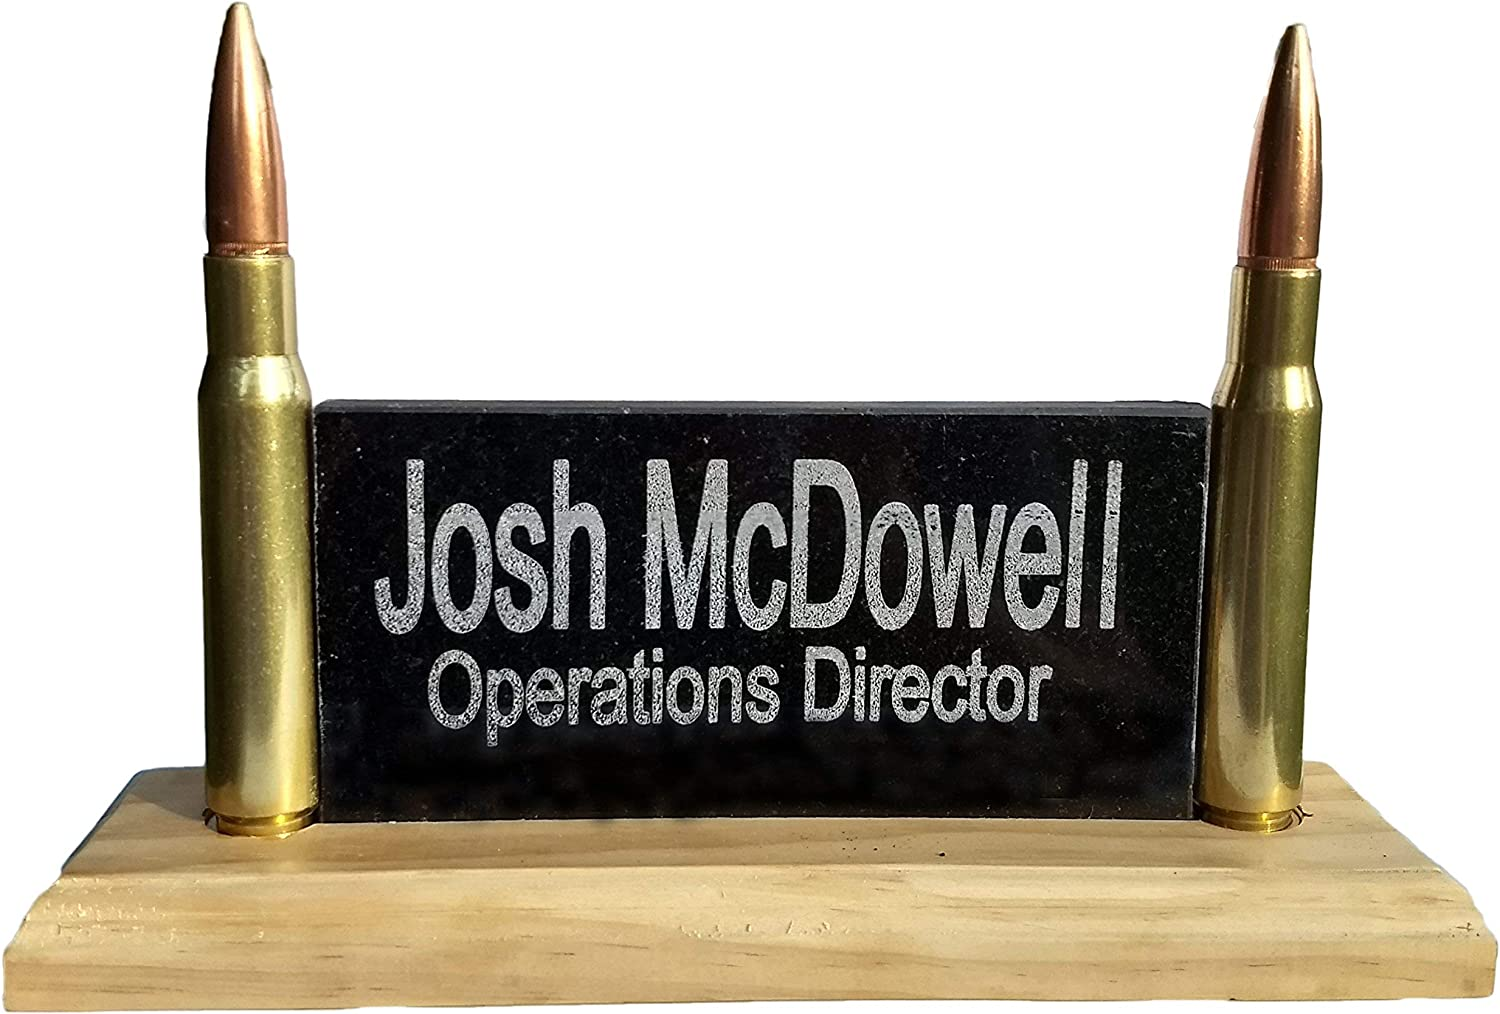 Desk Name Plate Personalized | Engraved Granite ; Real Solid Wood | Made in USA | Real 50 Cal Bullets | Great for Army, Navy, Marine or Police